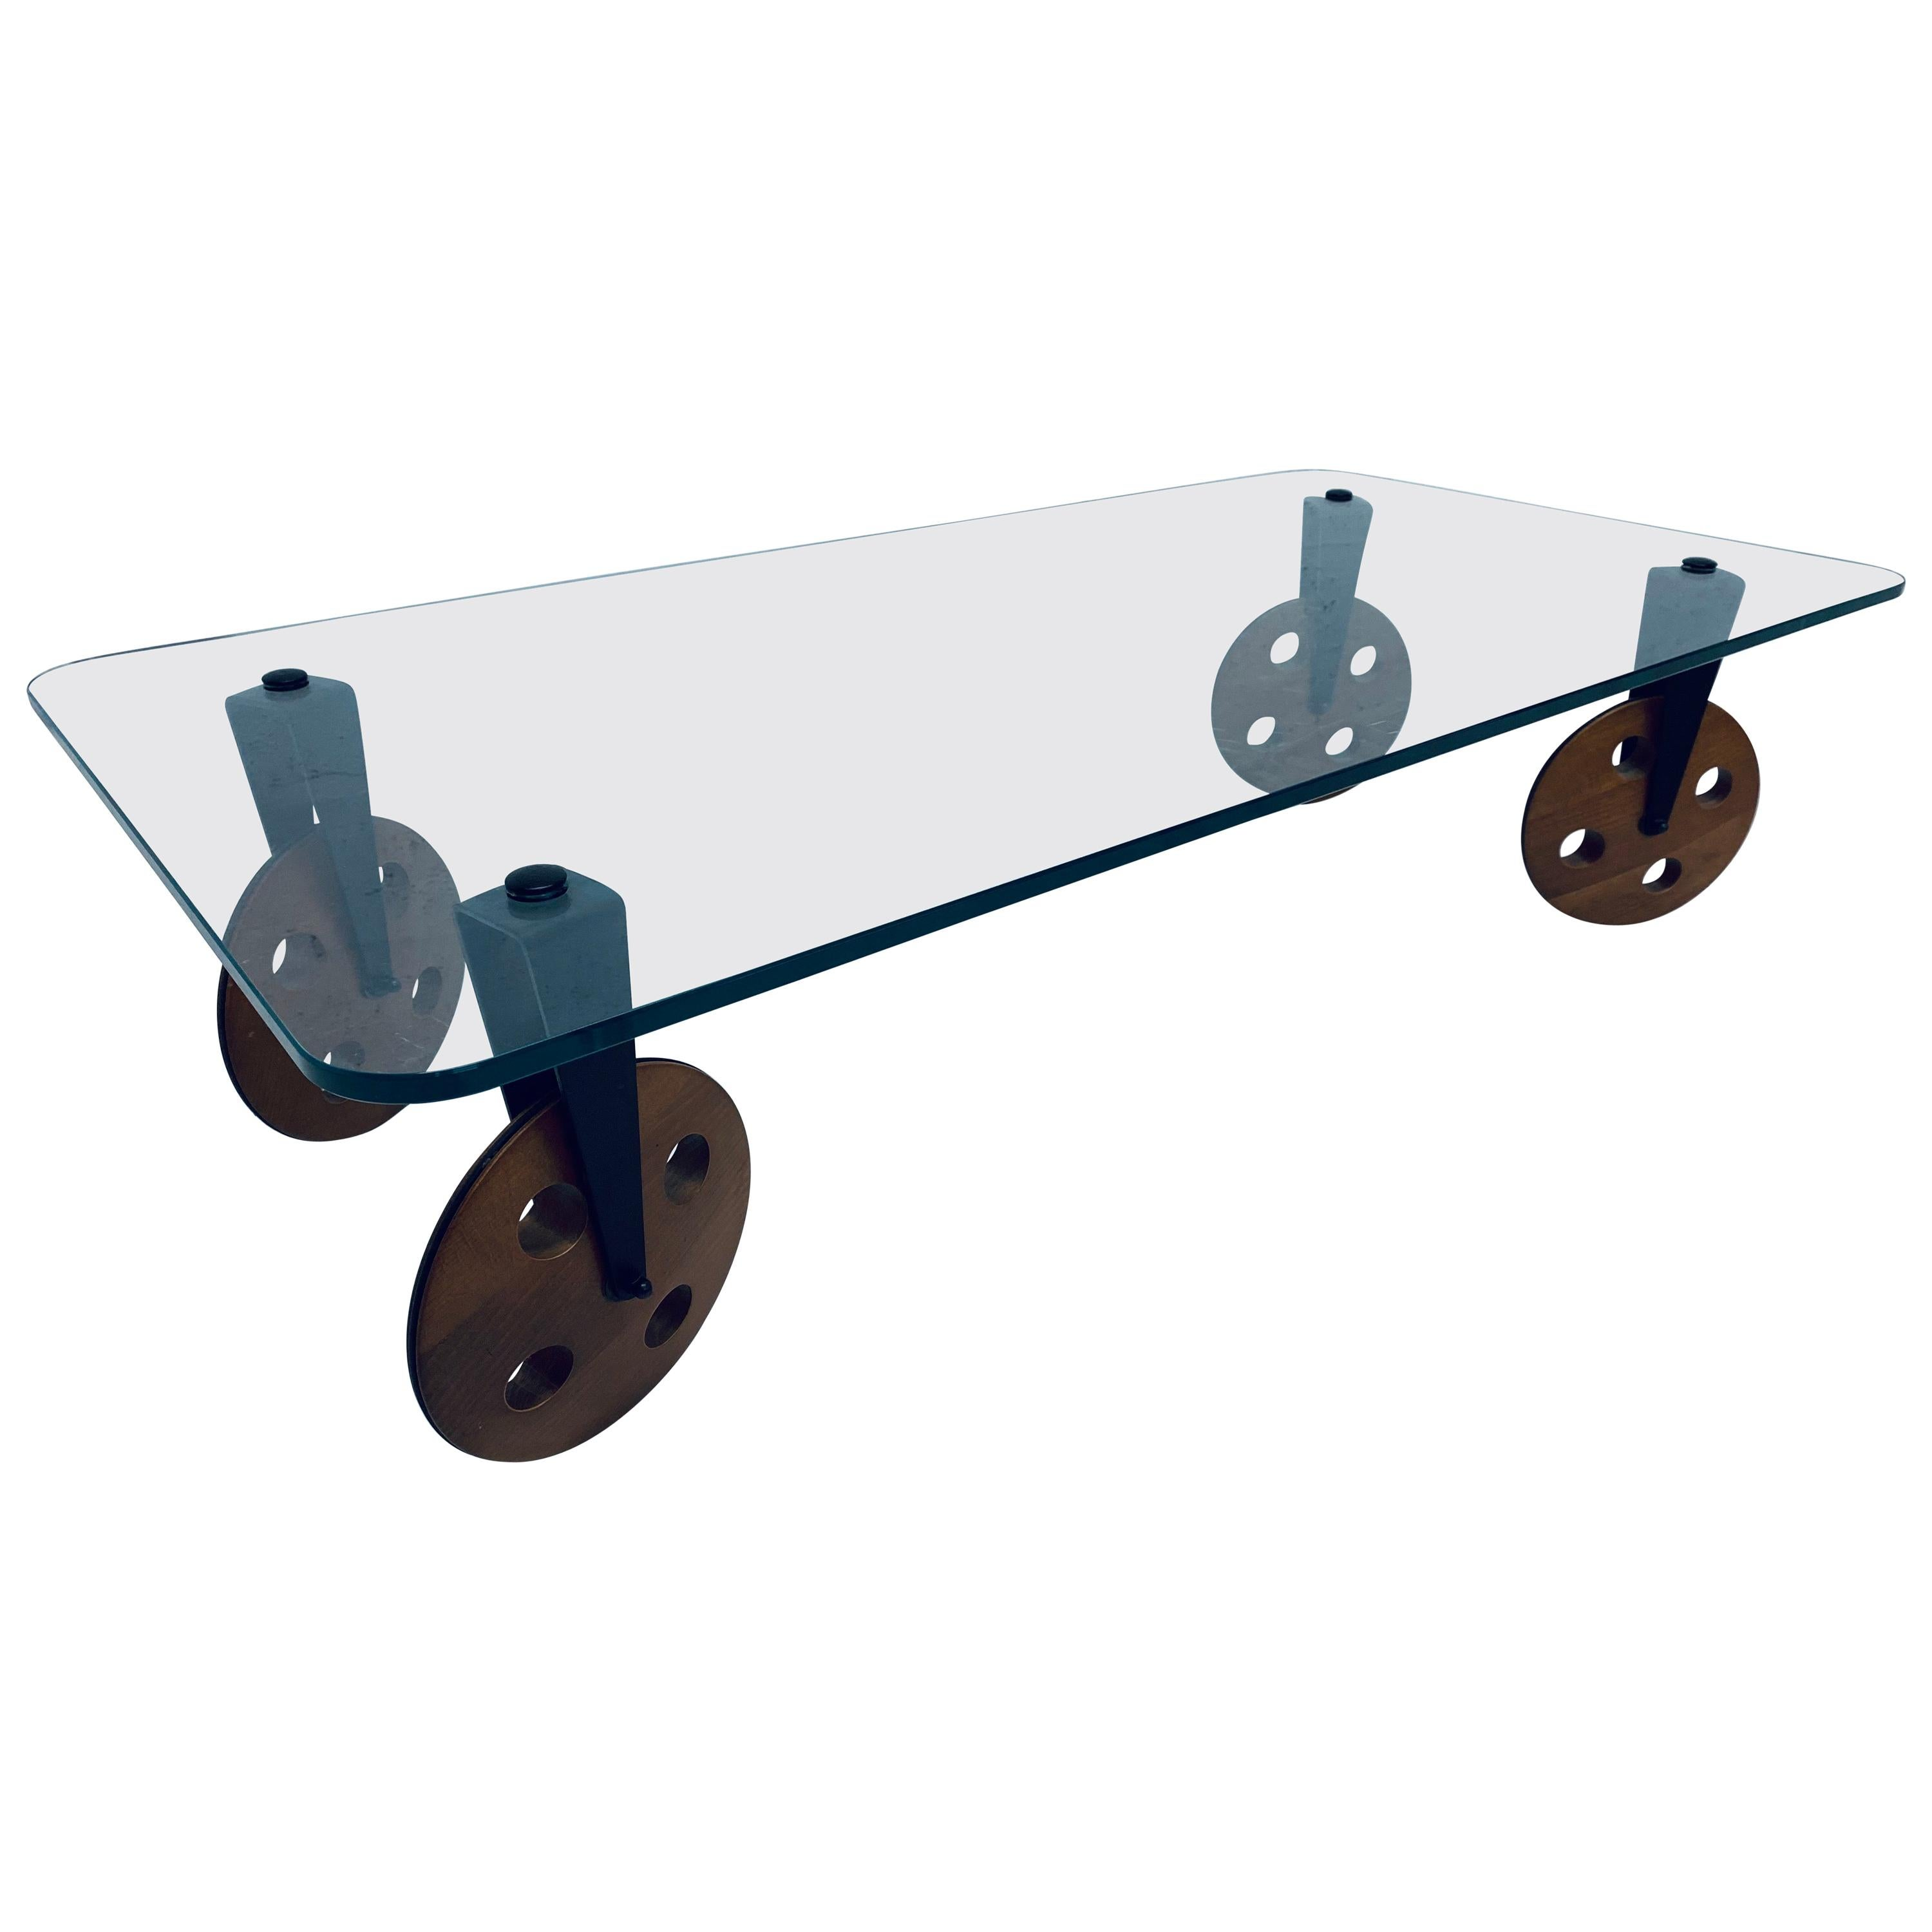 Postmodern Glass Coffee Table on Wheels After Gae Aulenti, 1980s